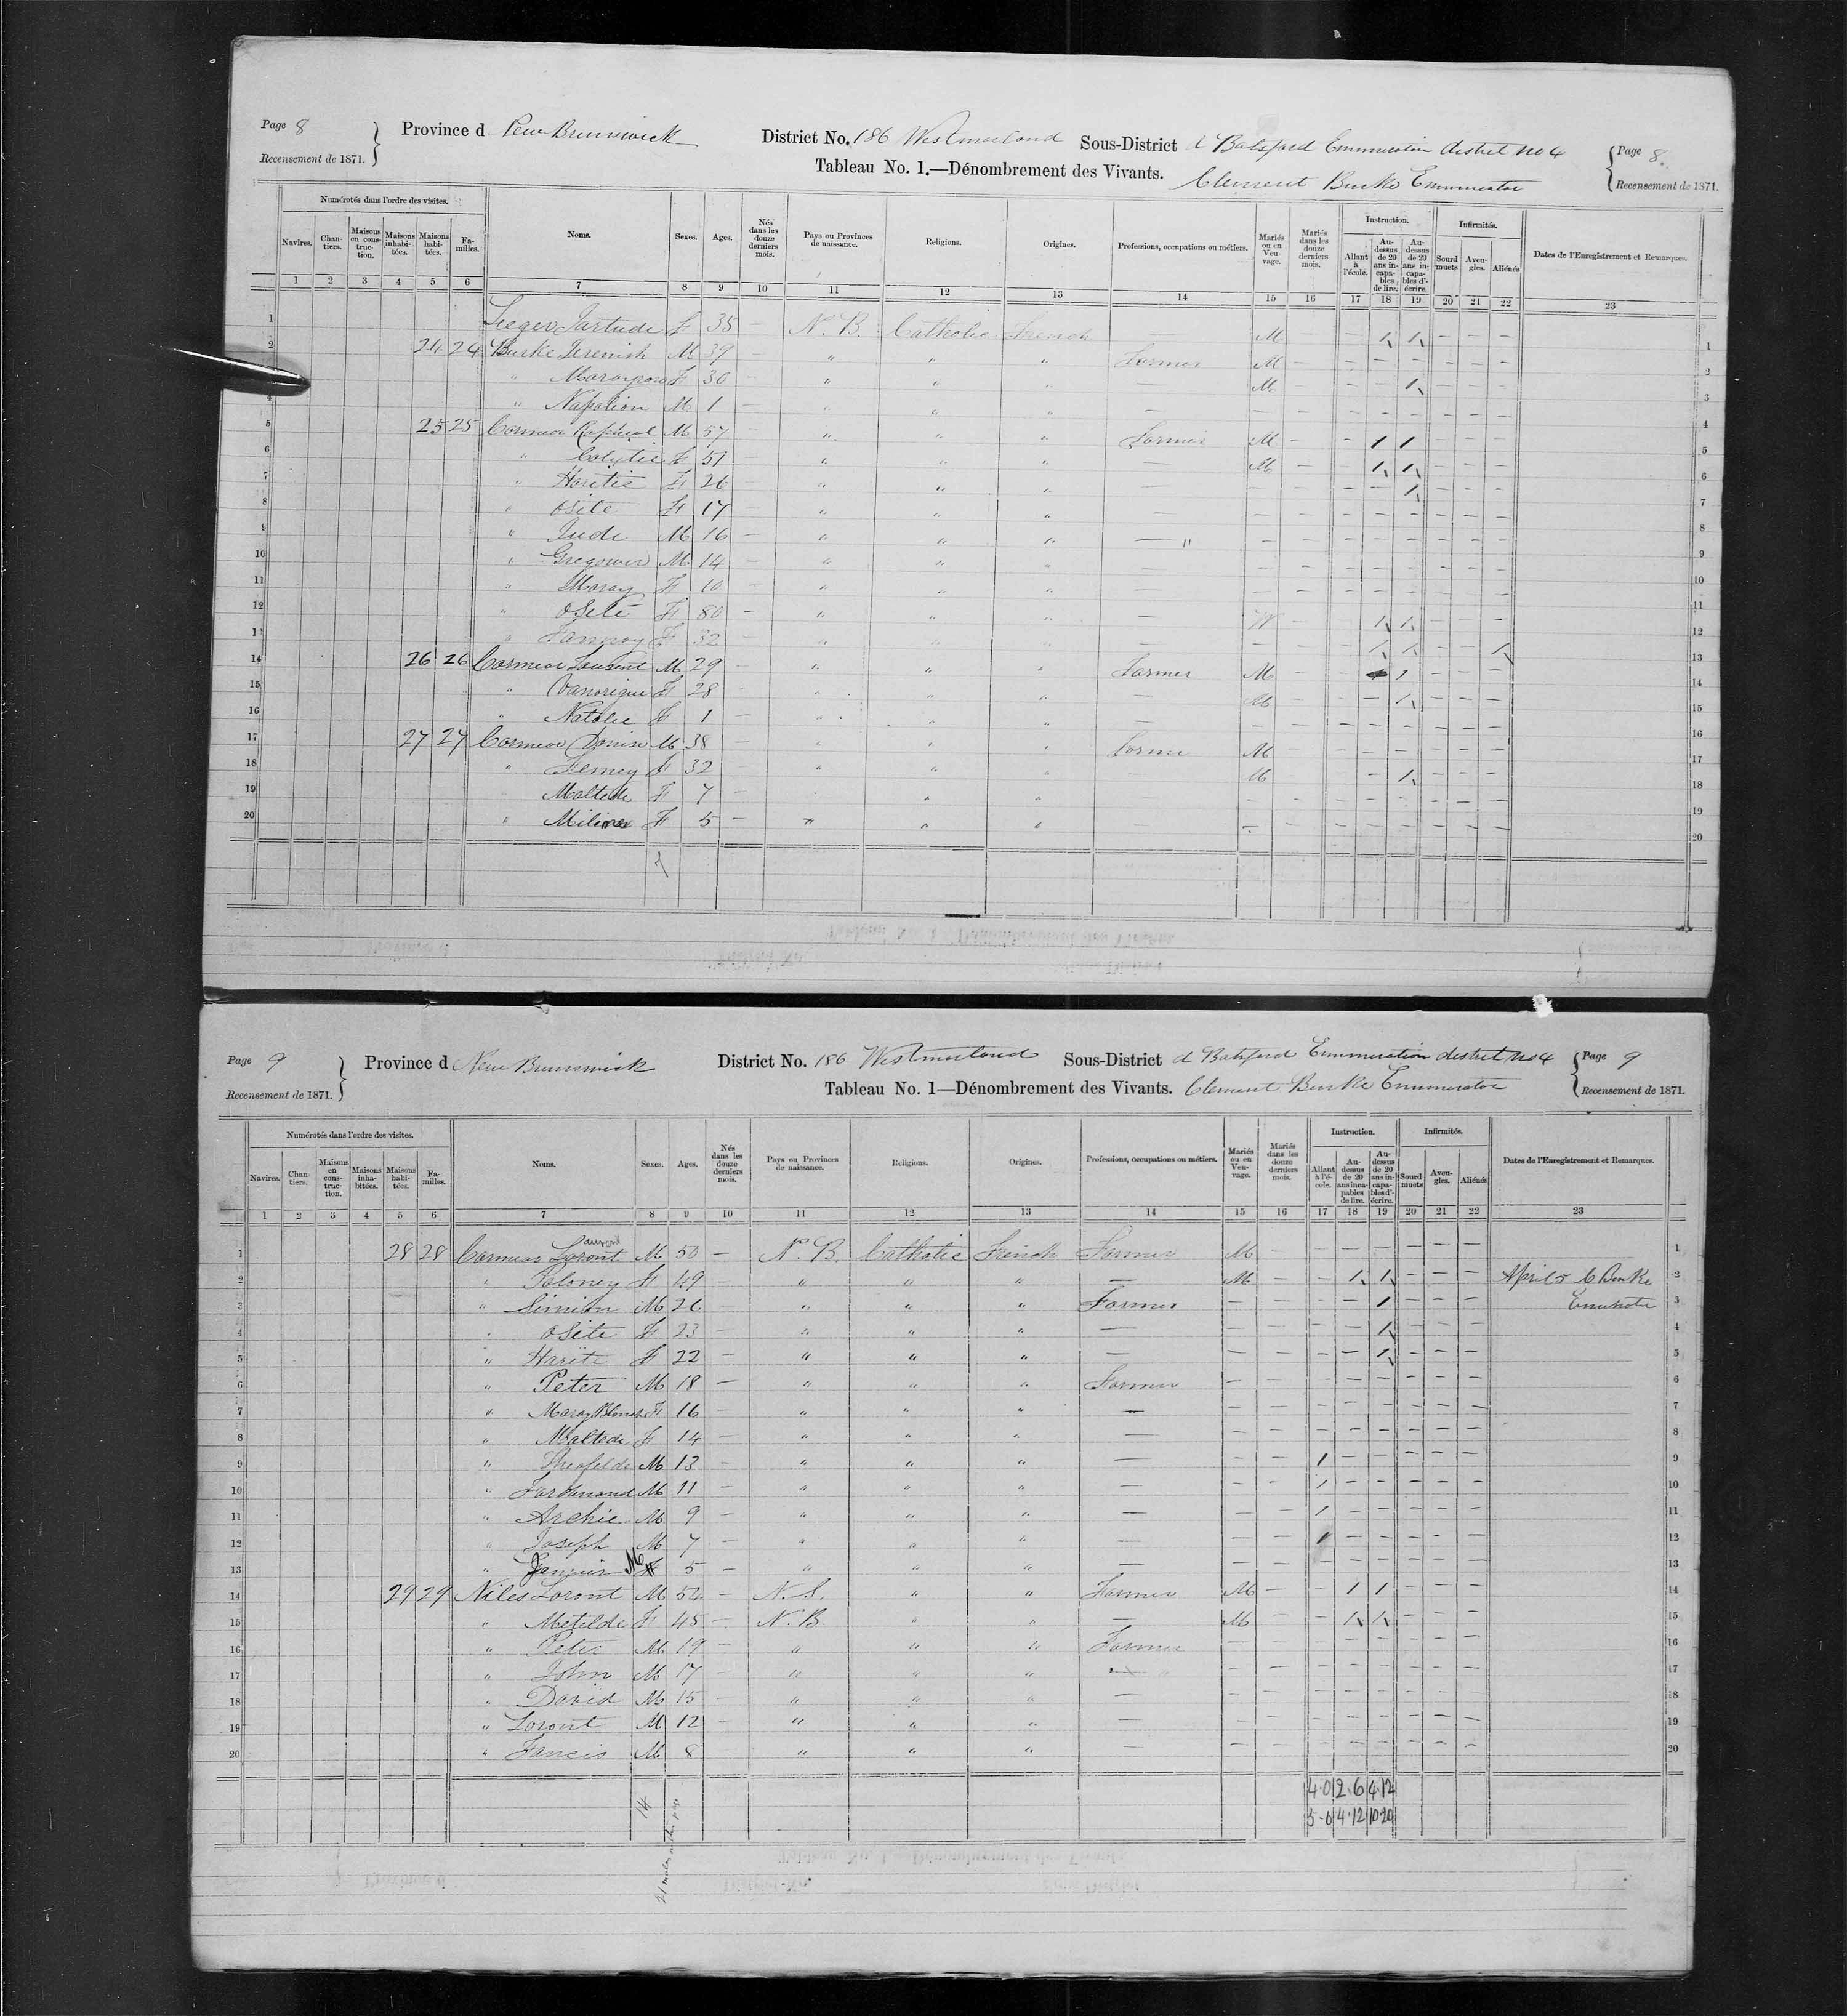 Digitized page of Census of Canada, 1871, Page number 9, for Loront Niles